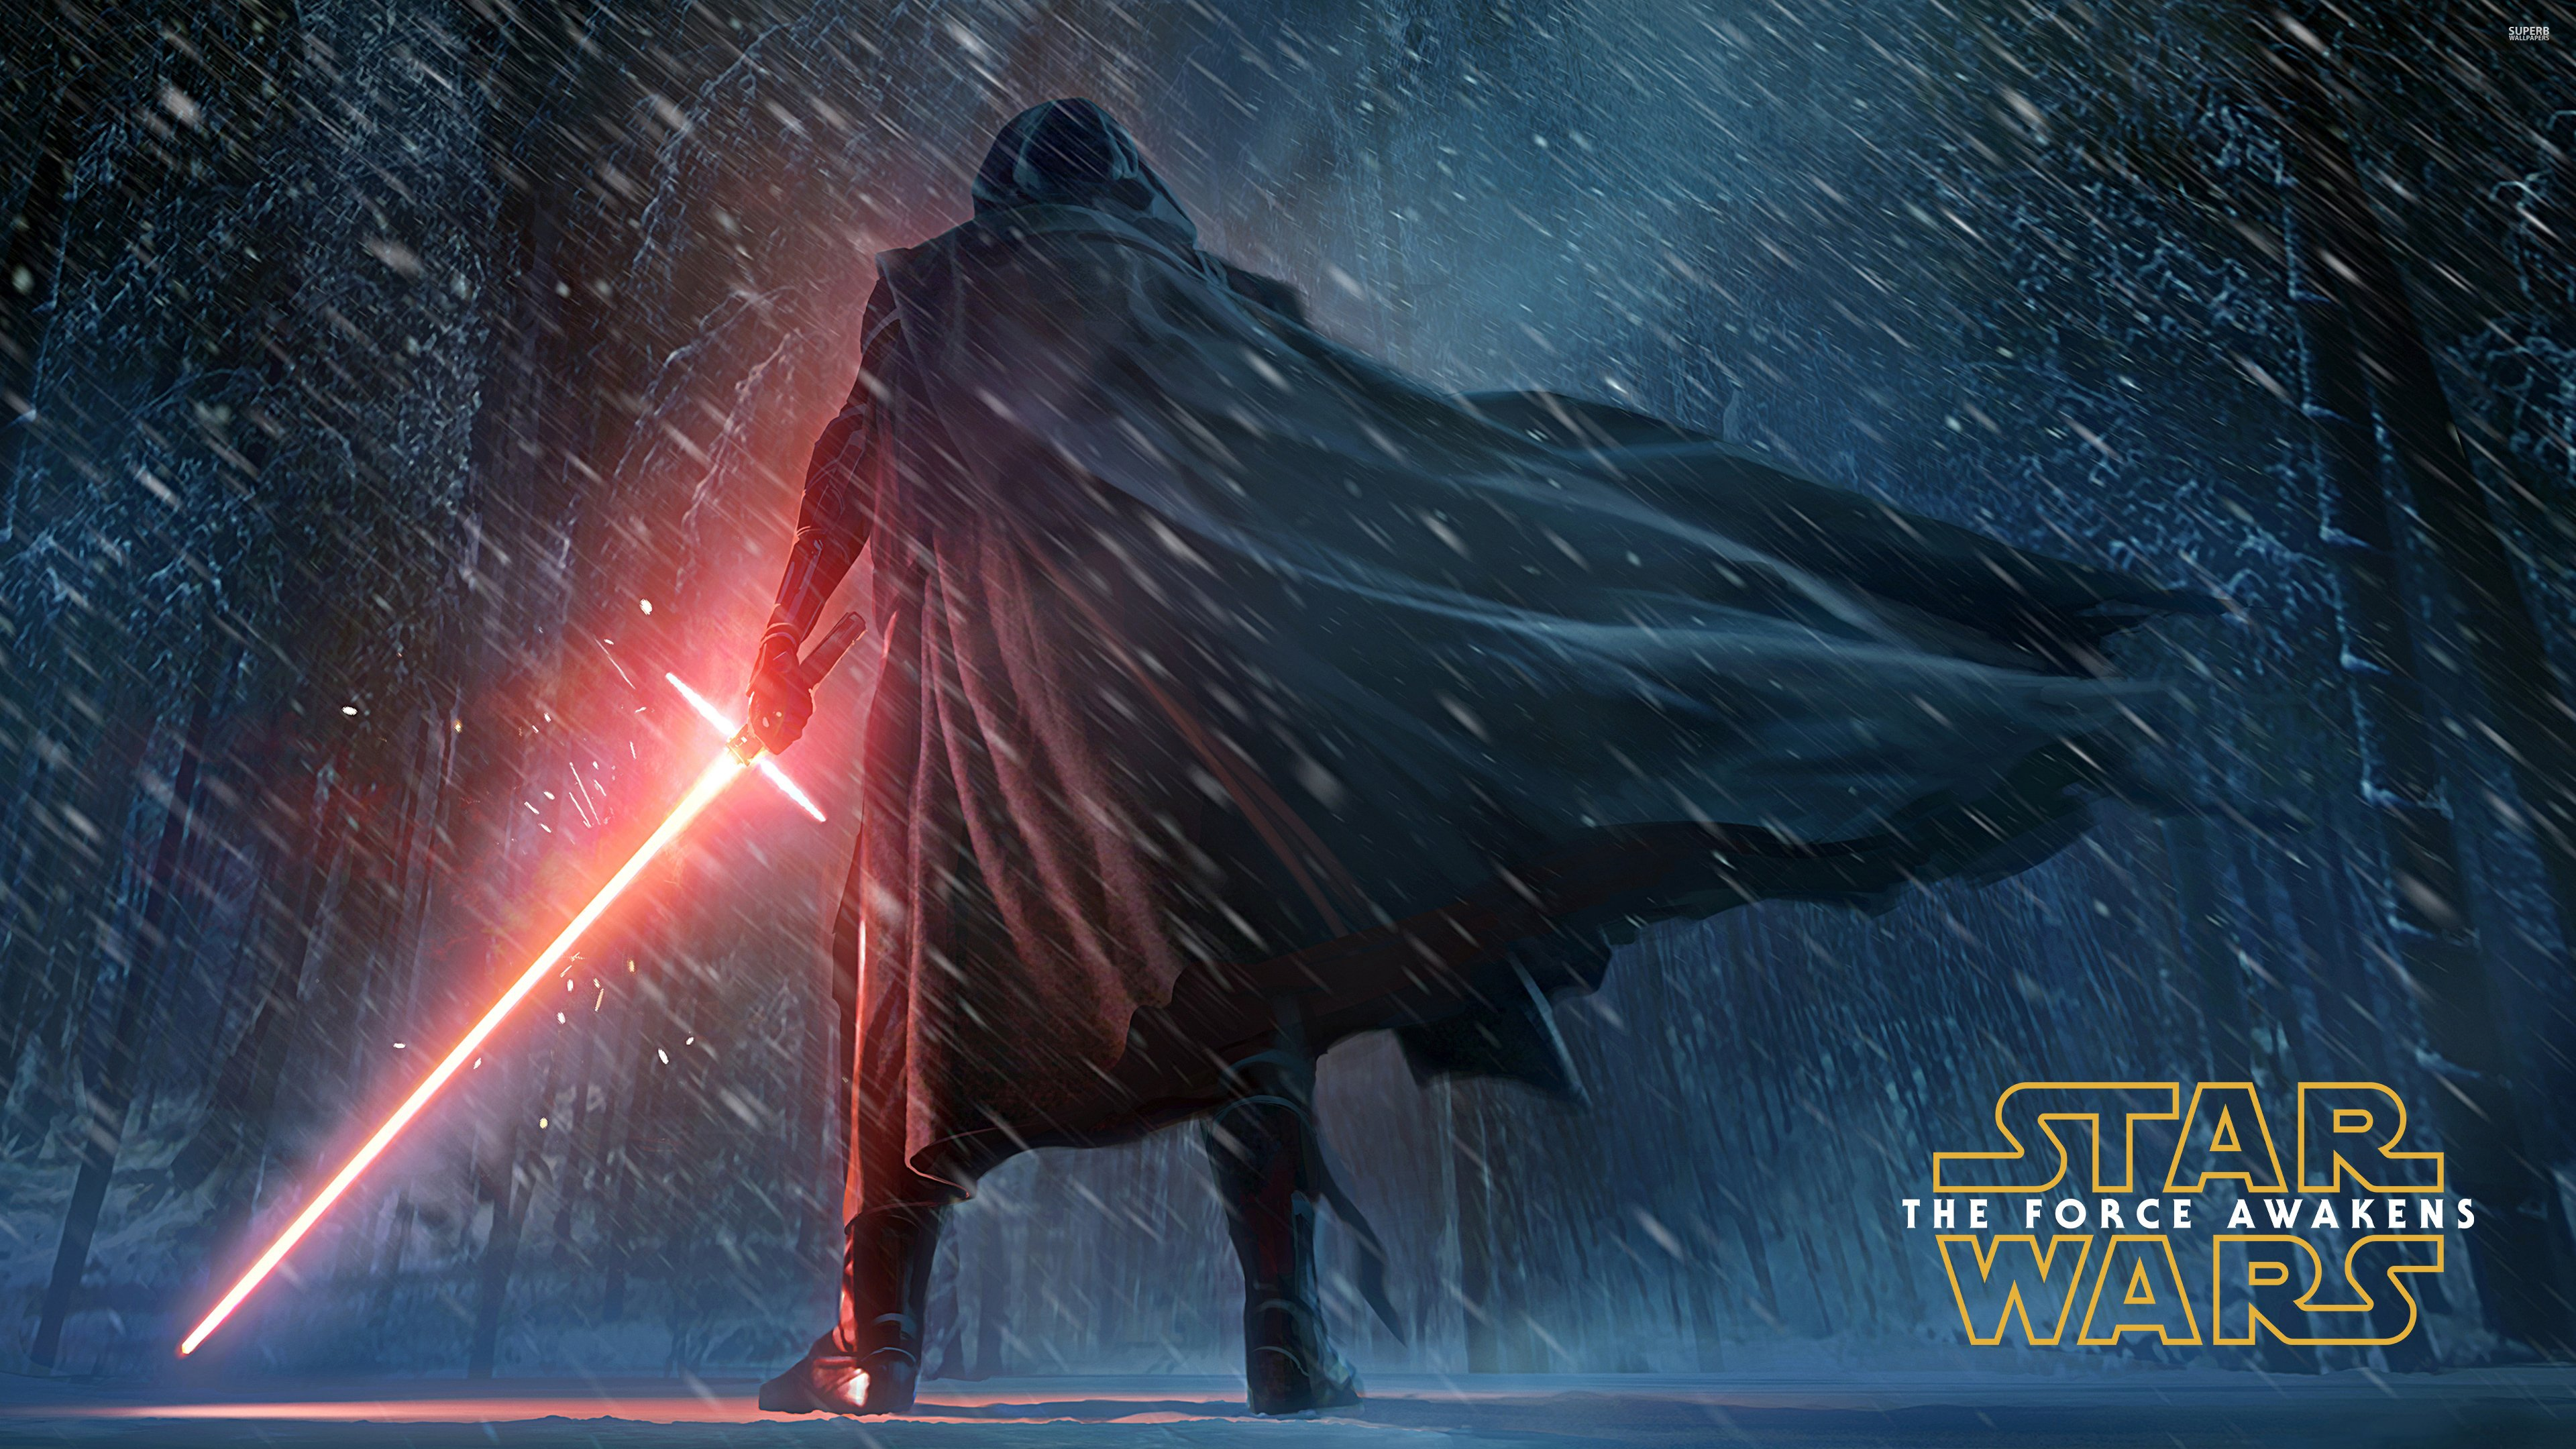 Kylo Ren Star Wars wallpaper HD background download desktop 3840x2160